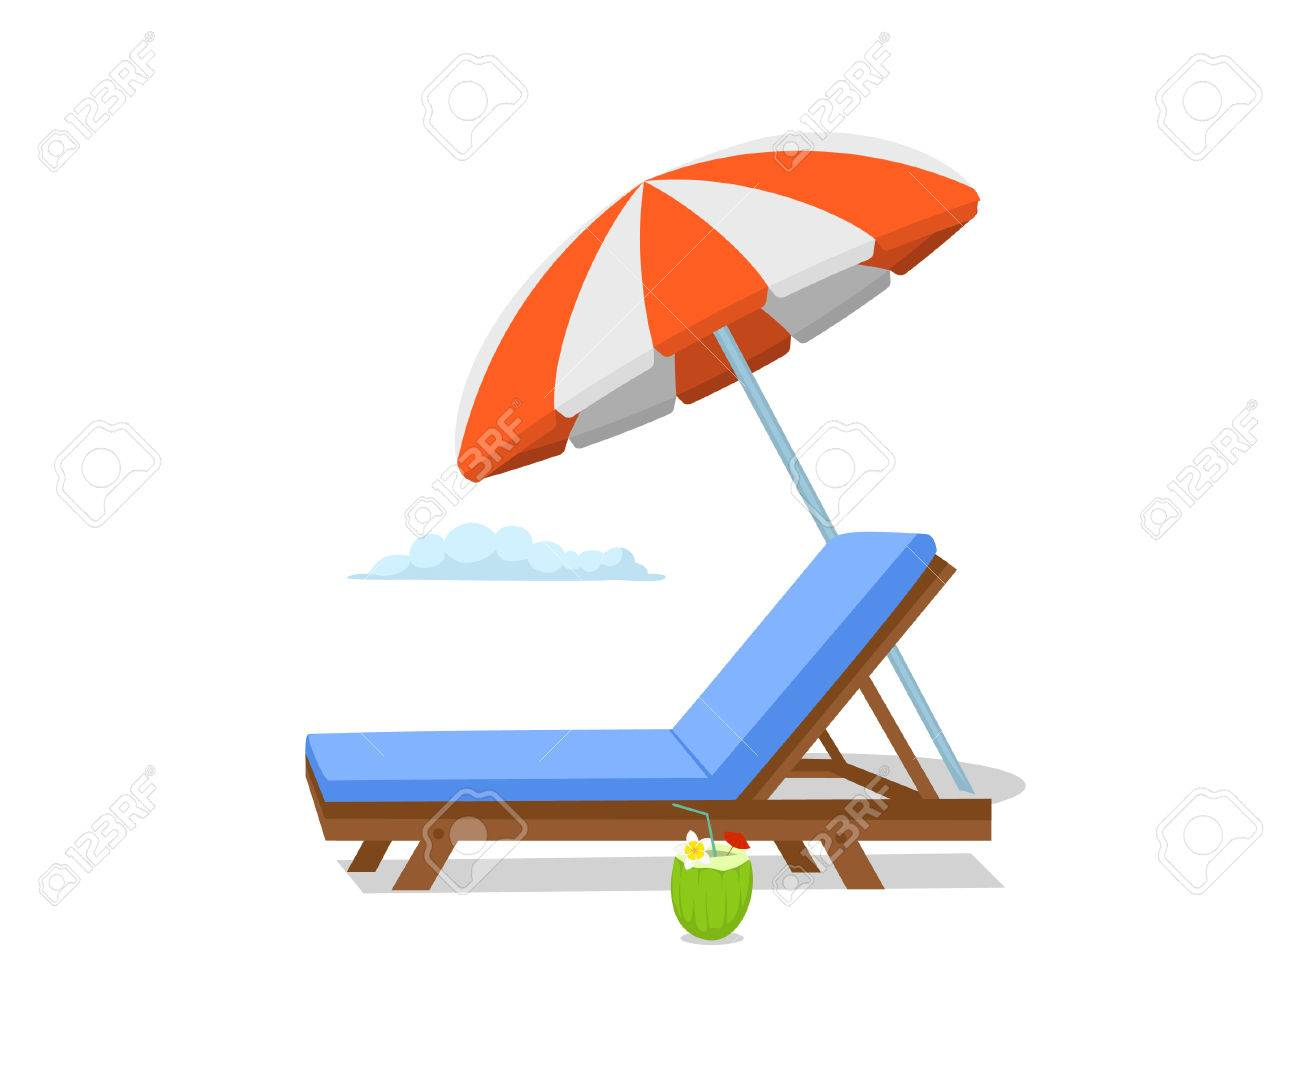 Sonnenstuhl Clipart Summer Time Beach Umbrella Lounge Sun Chair Scene Isolated